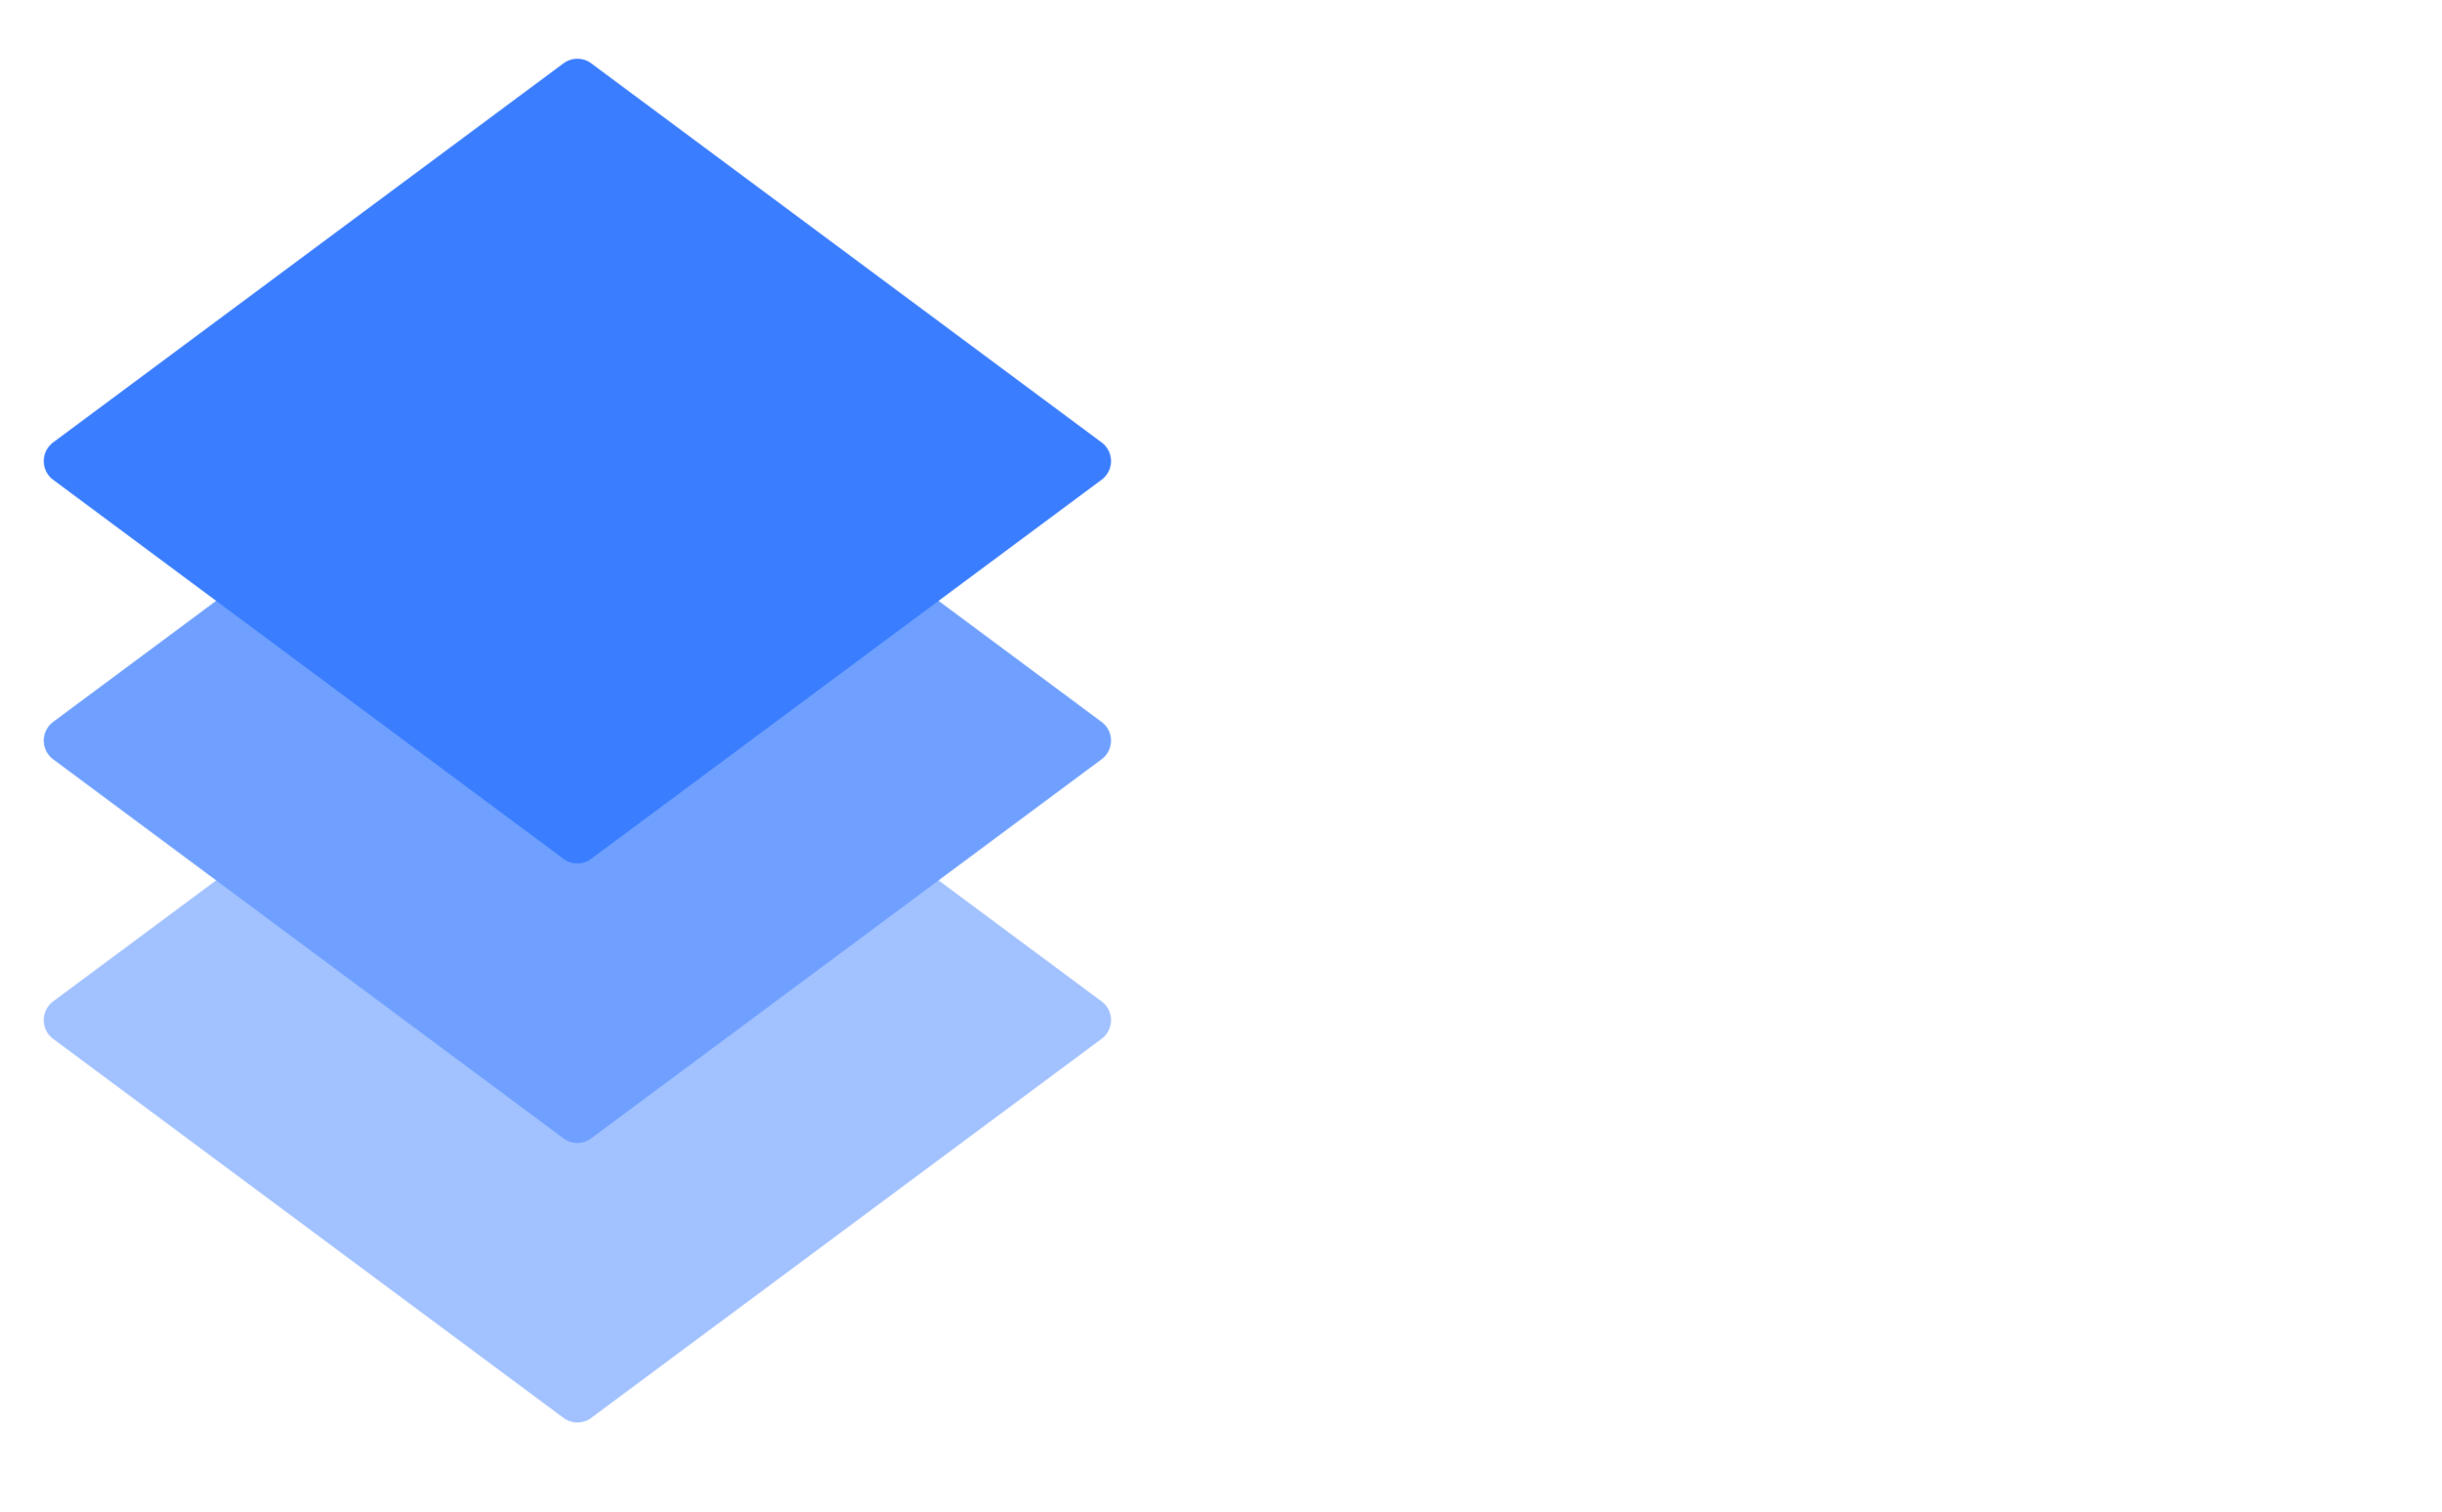 PLATFORM LAYERS - The novii infrastructure can be deconstructed into 3 layers: our protocol architecture, the community platform overlay, and topped off with community tools for the users.